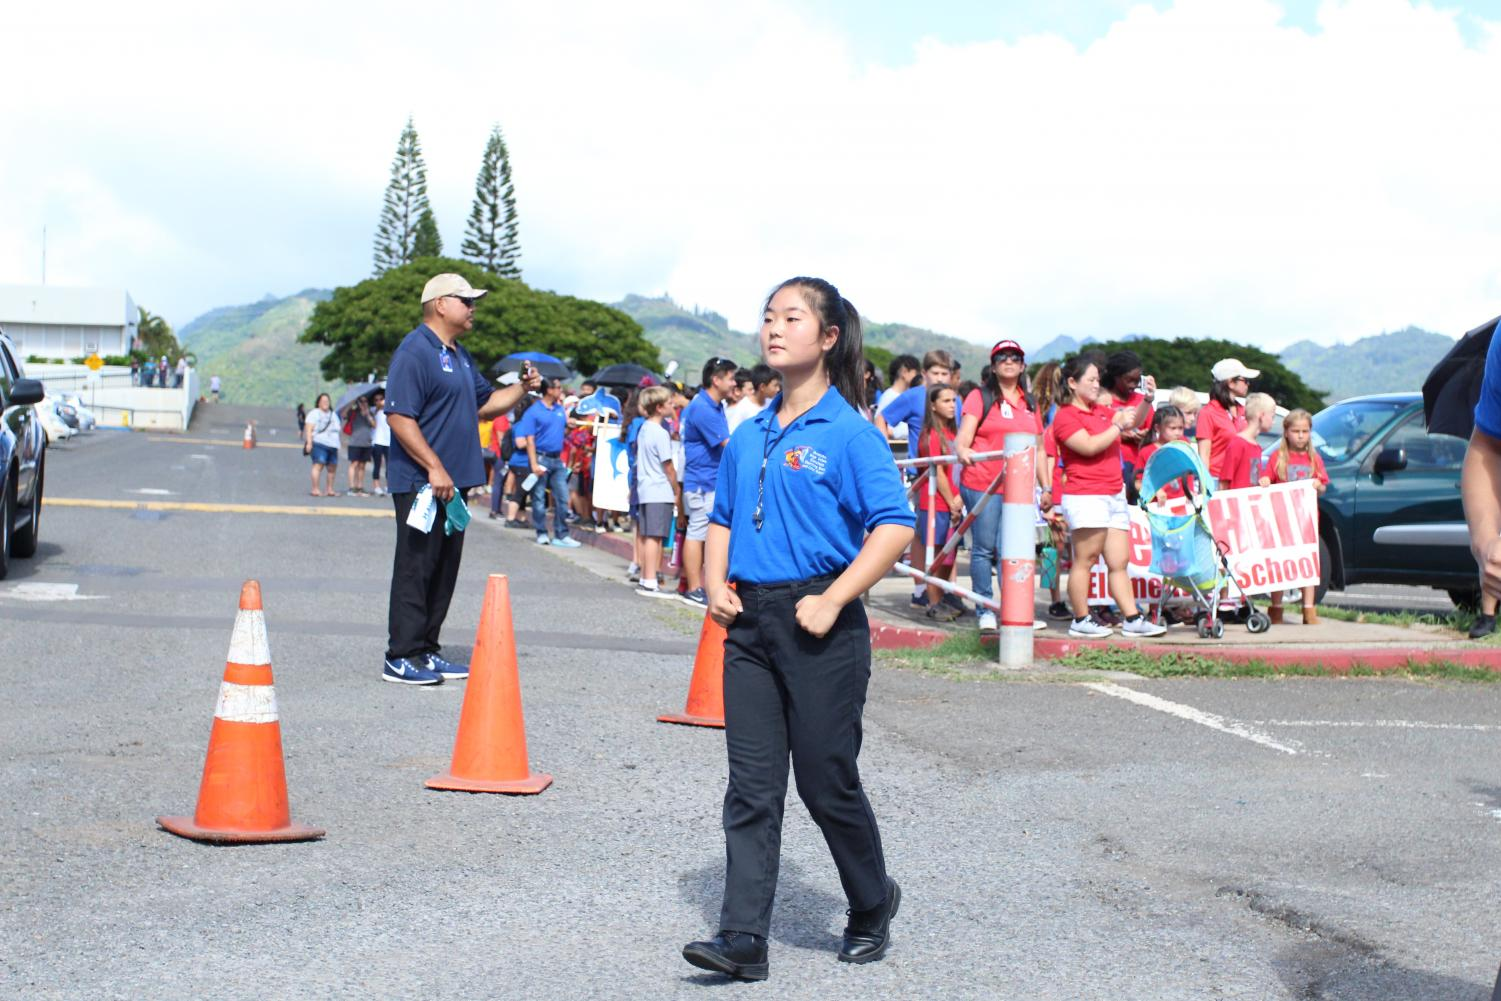 Mari Shimabukuro leads the marching band at the Moanalua High School Homecoming Parade. Shimabukuro is the first female drum major in over 10 years.